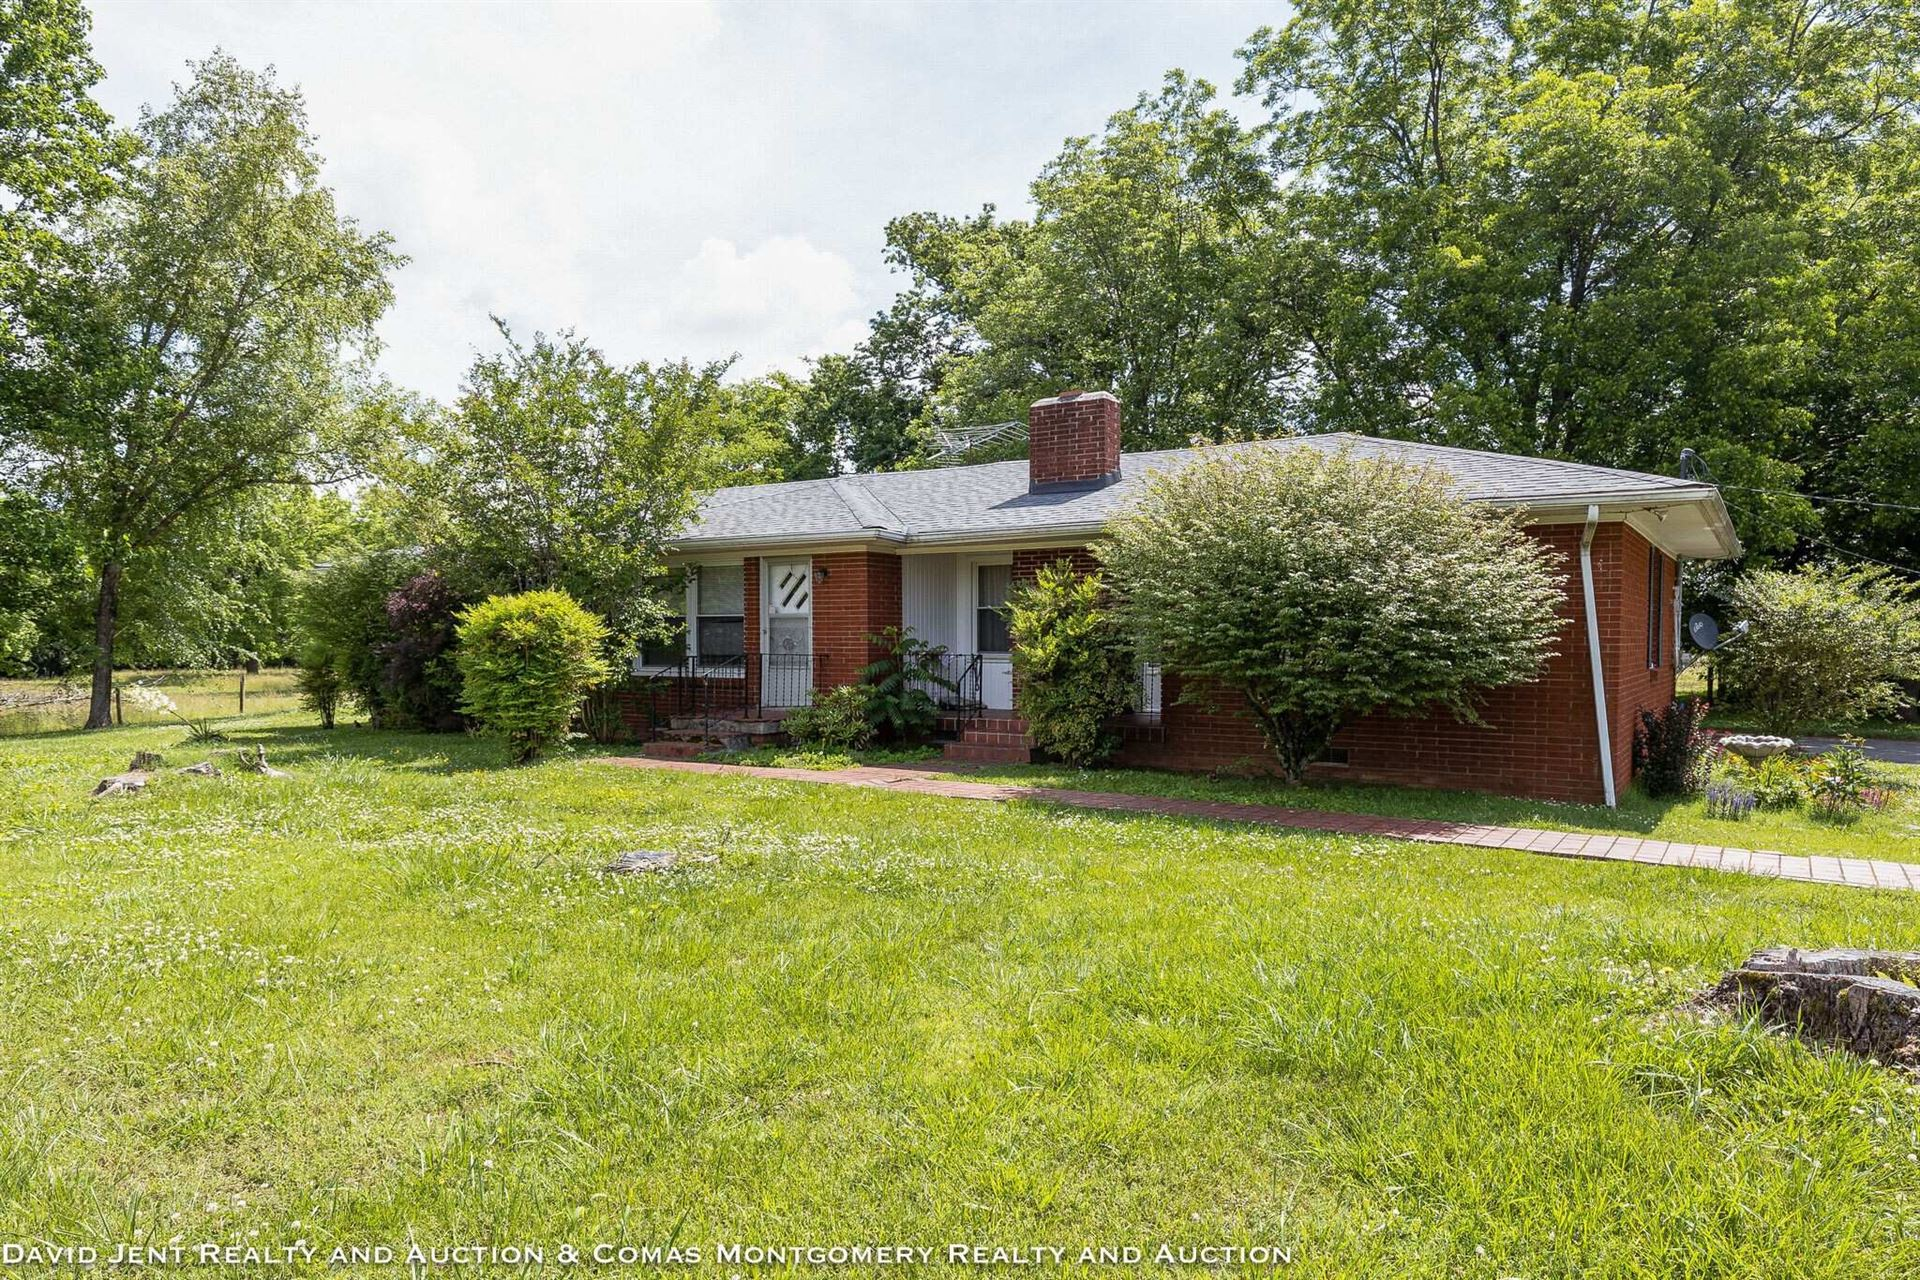 1264 N Main St as a whole, Eagleville, TN 37060 - MLS#: 2301027